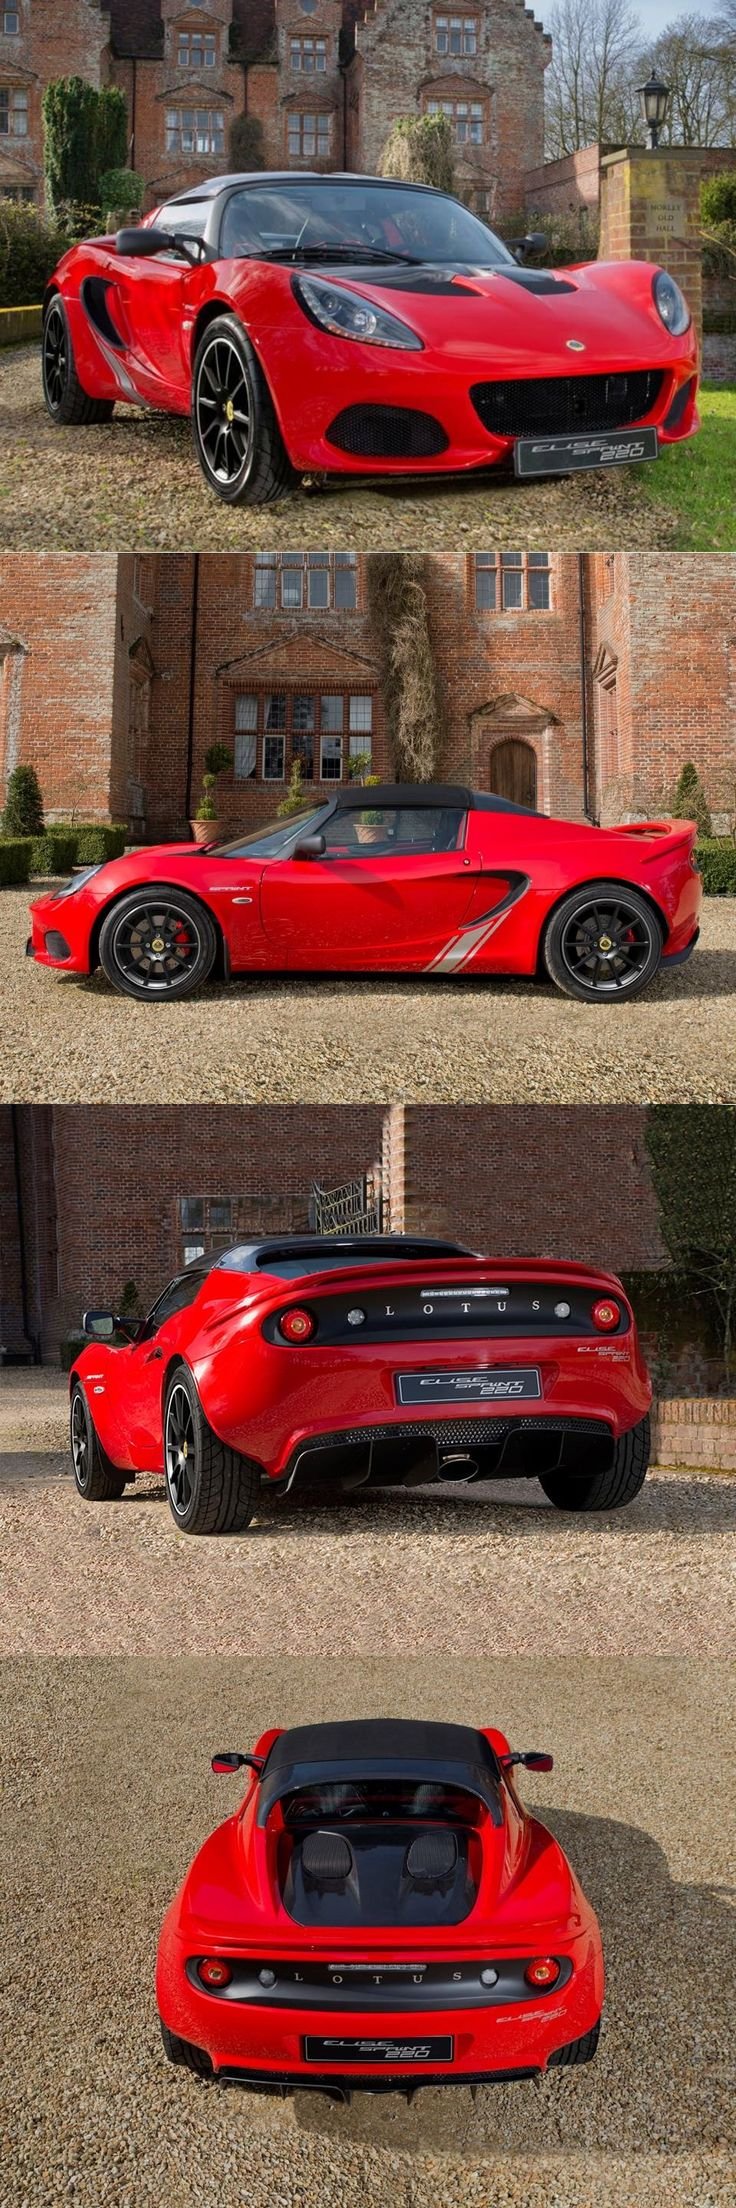 Lotus Cars has released a new variant of their lightweight sportscar Elise – the Sprint.